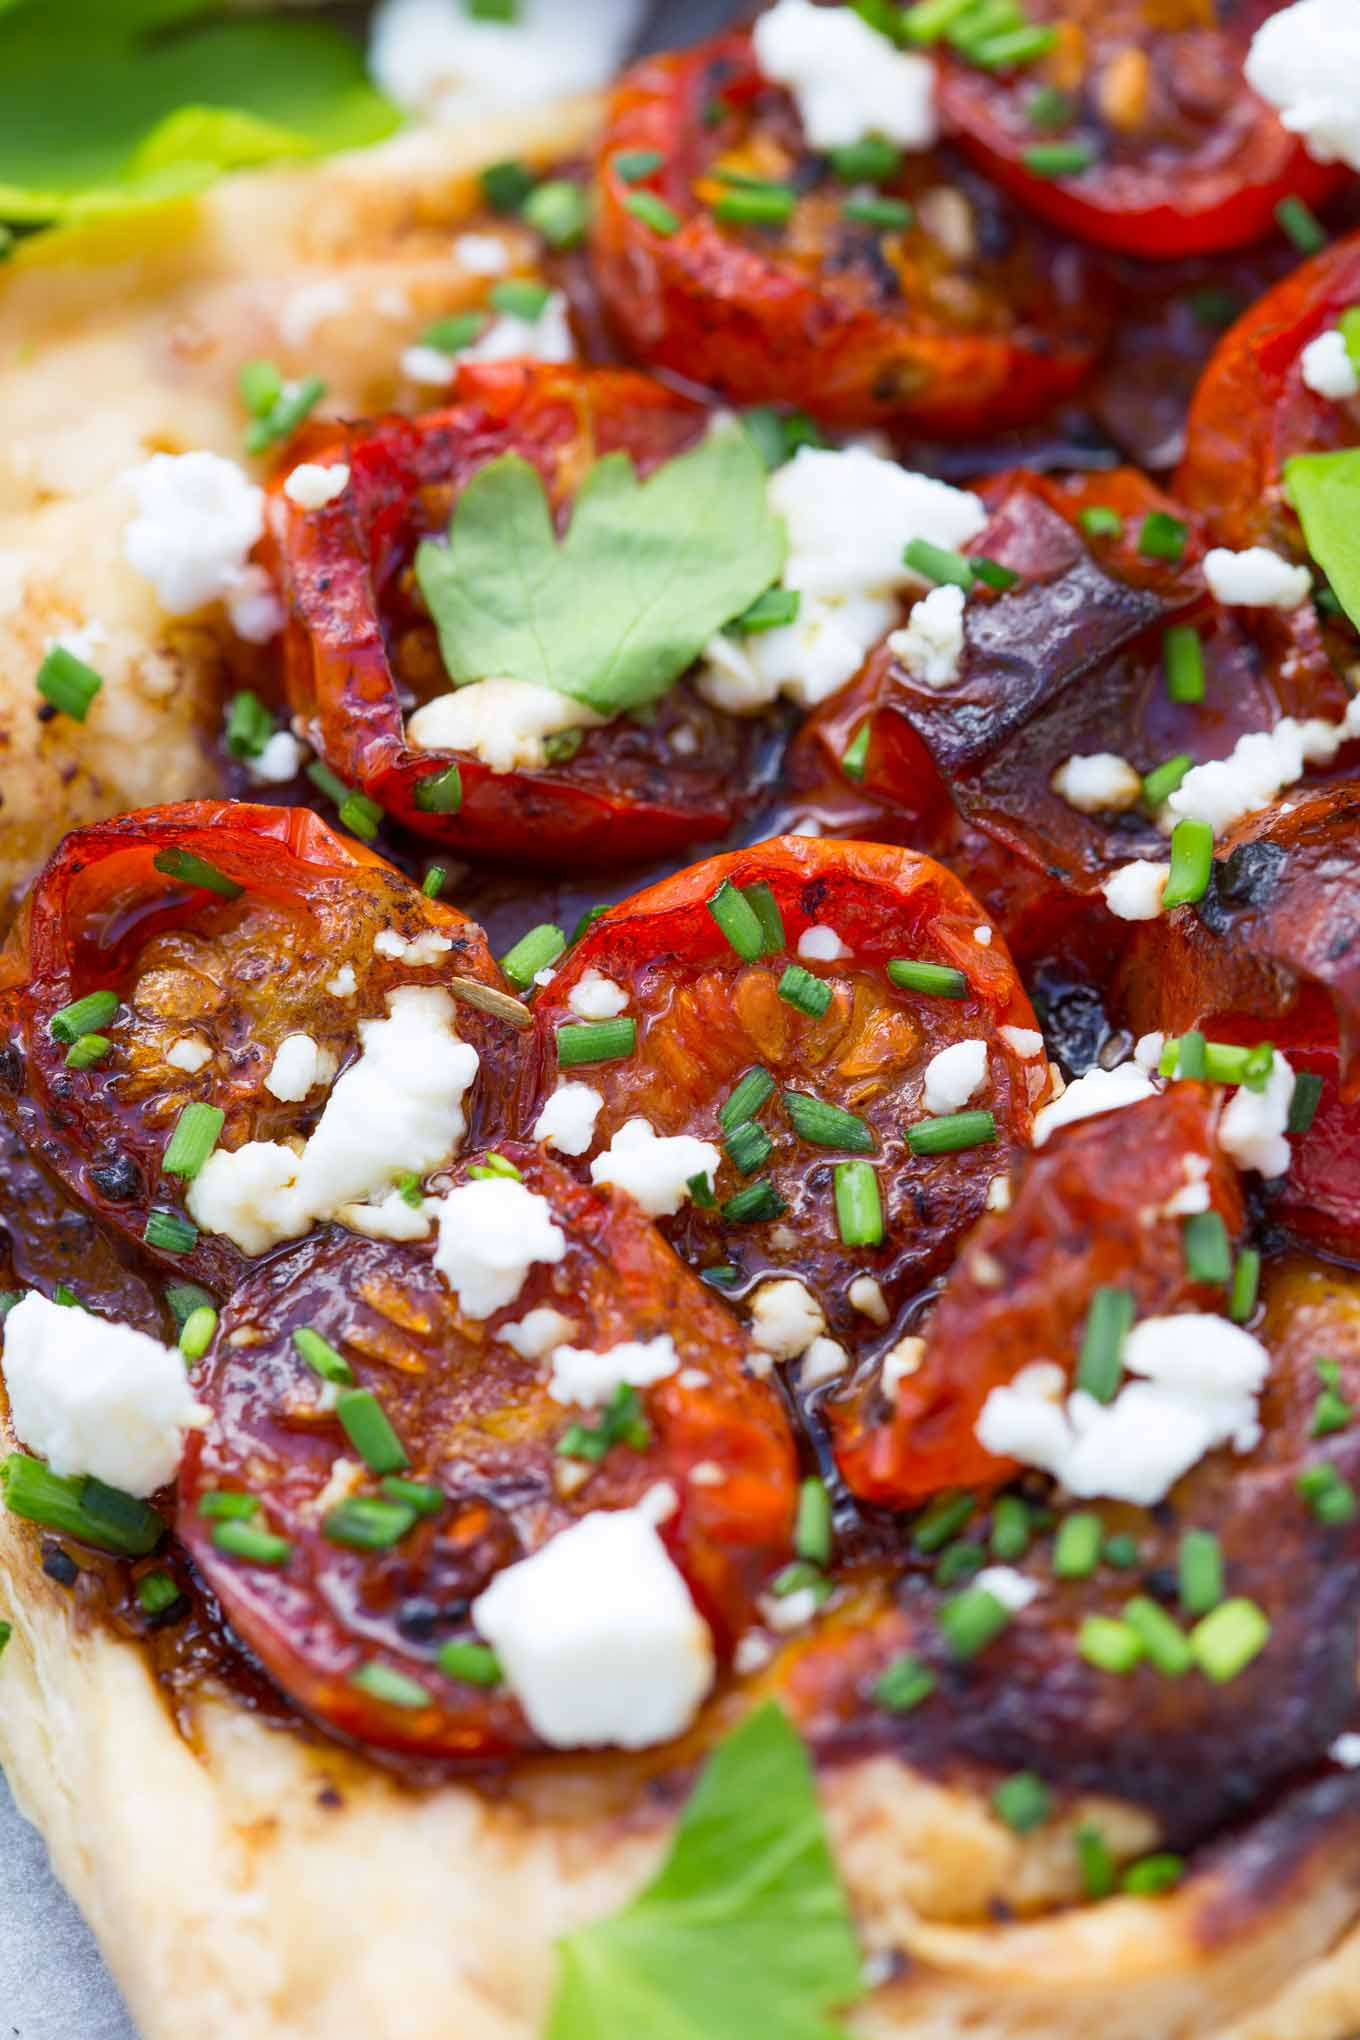 These Easy Cherry Tomato Tarts with Black Garlic Honey Dressing simply melt in the mouth!